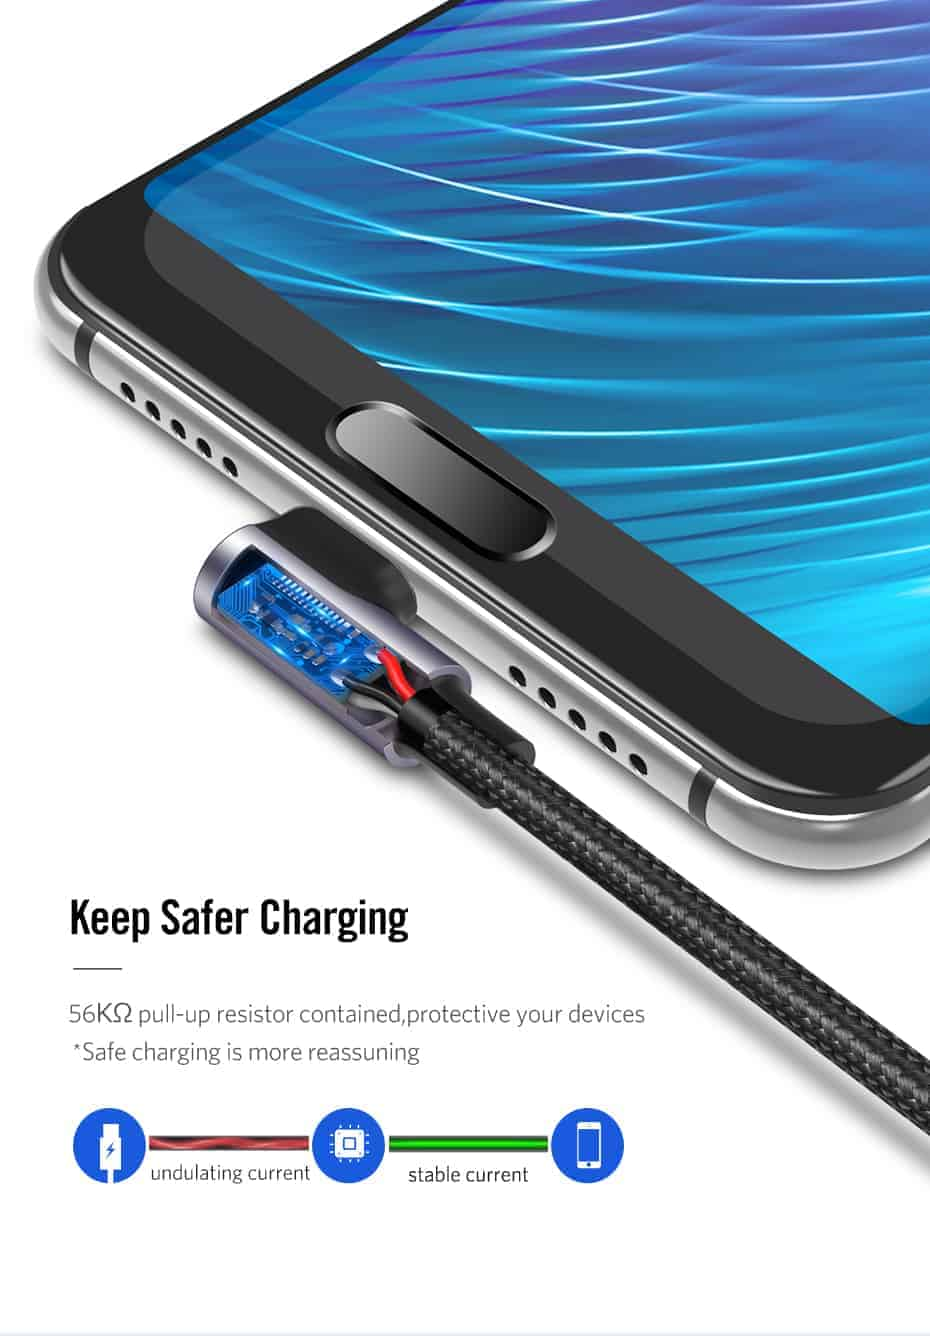 Ugreen 3A USB Type C 90 Degree-Keep Safer Charging